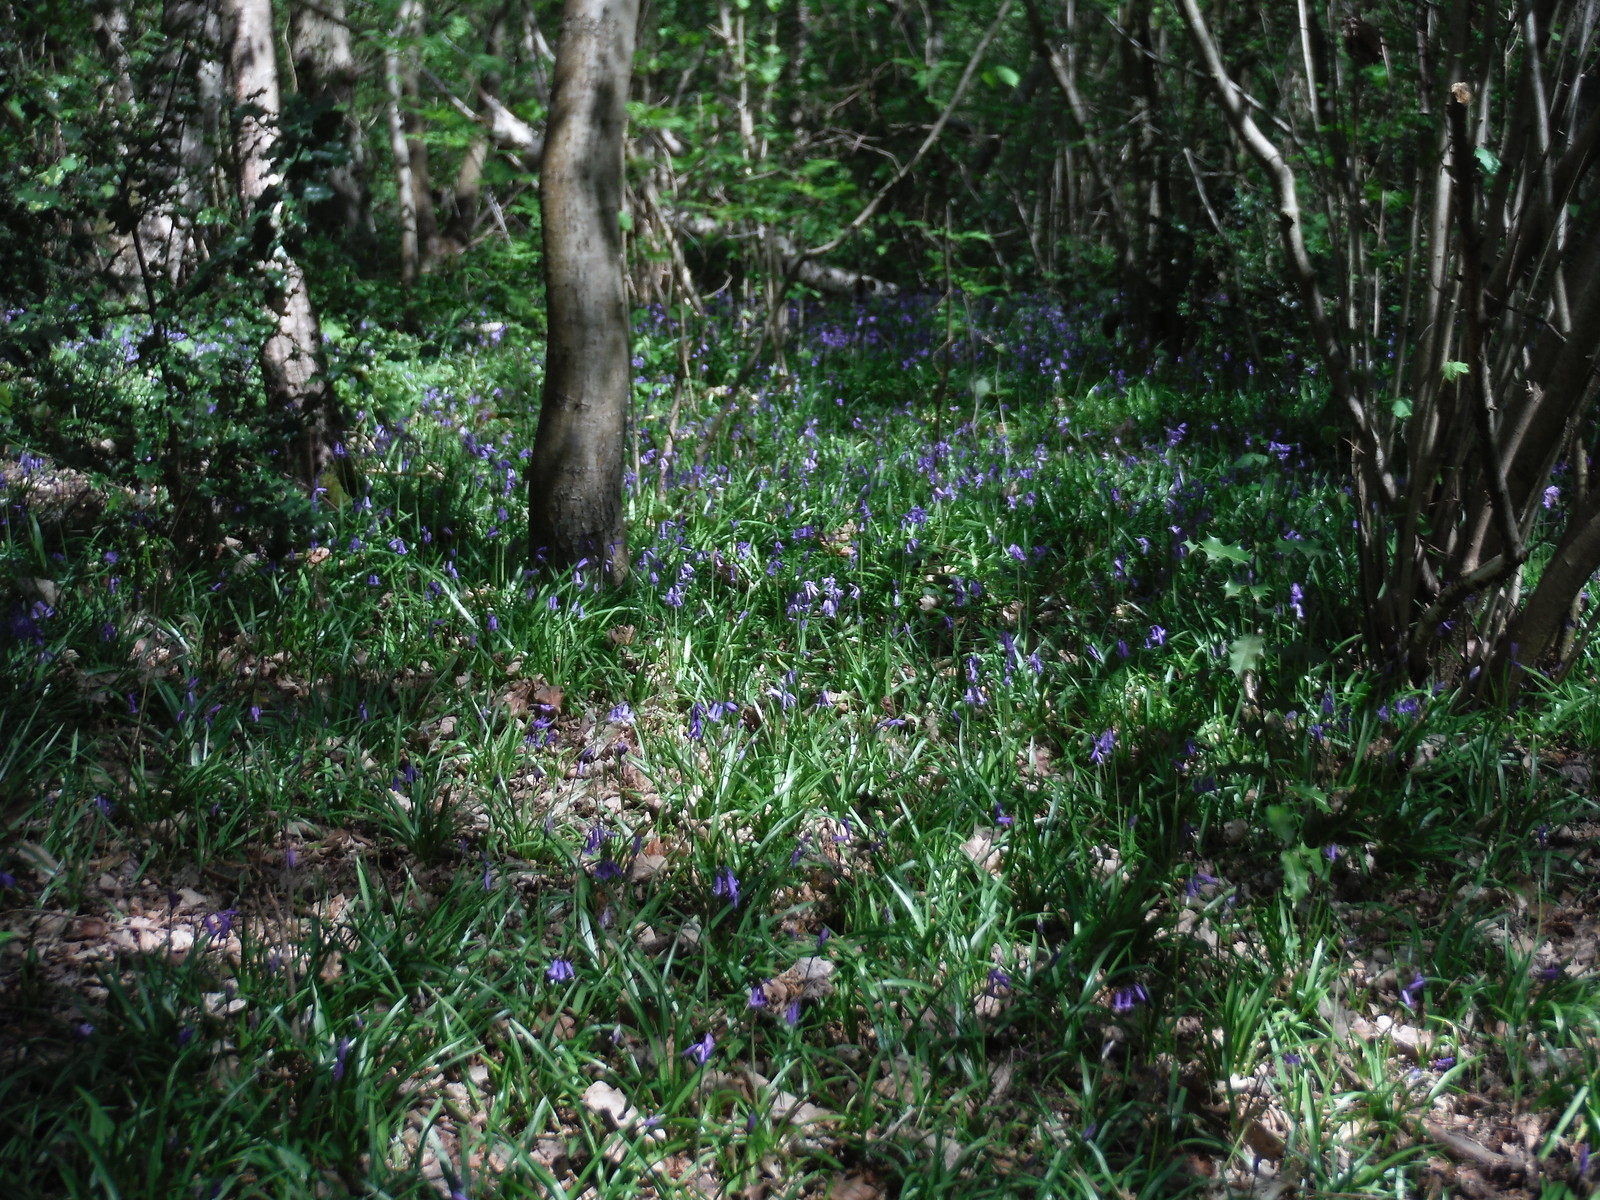 Bluebells in Oxleas Wood SWC Short Walk 44 - Oxleas Wood and Shooters Hill (Falconwood Circular)